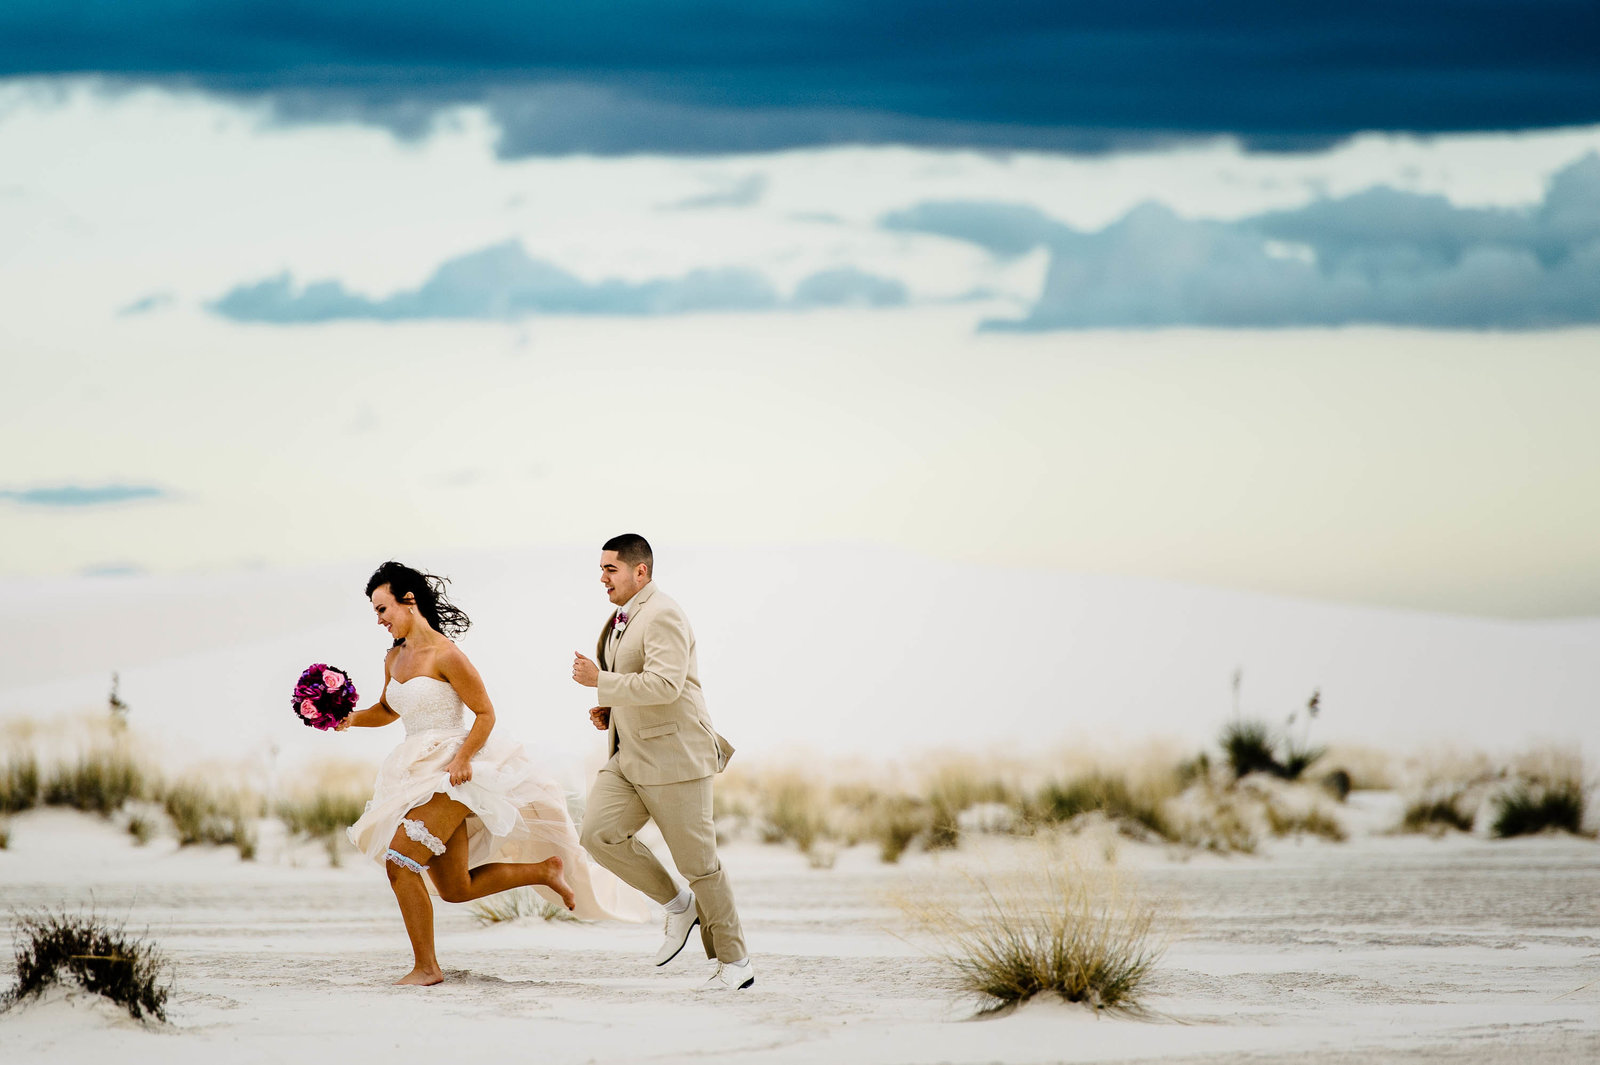 277-El-paso-wedding-photographer-StAd _0428